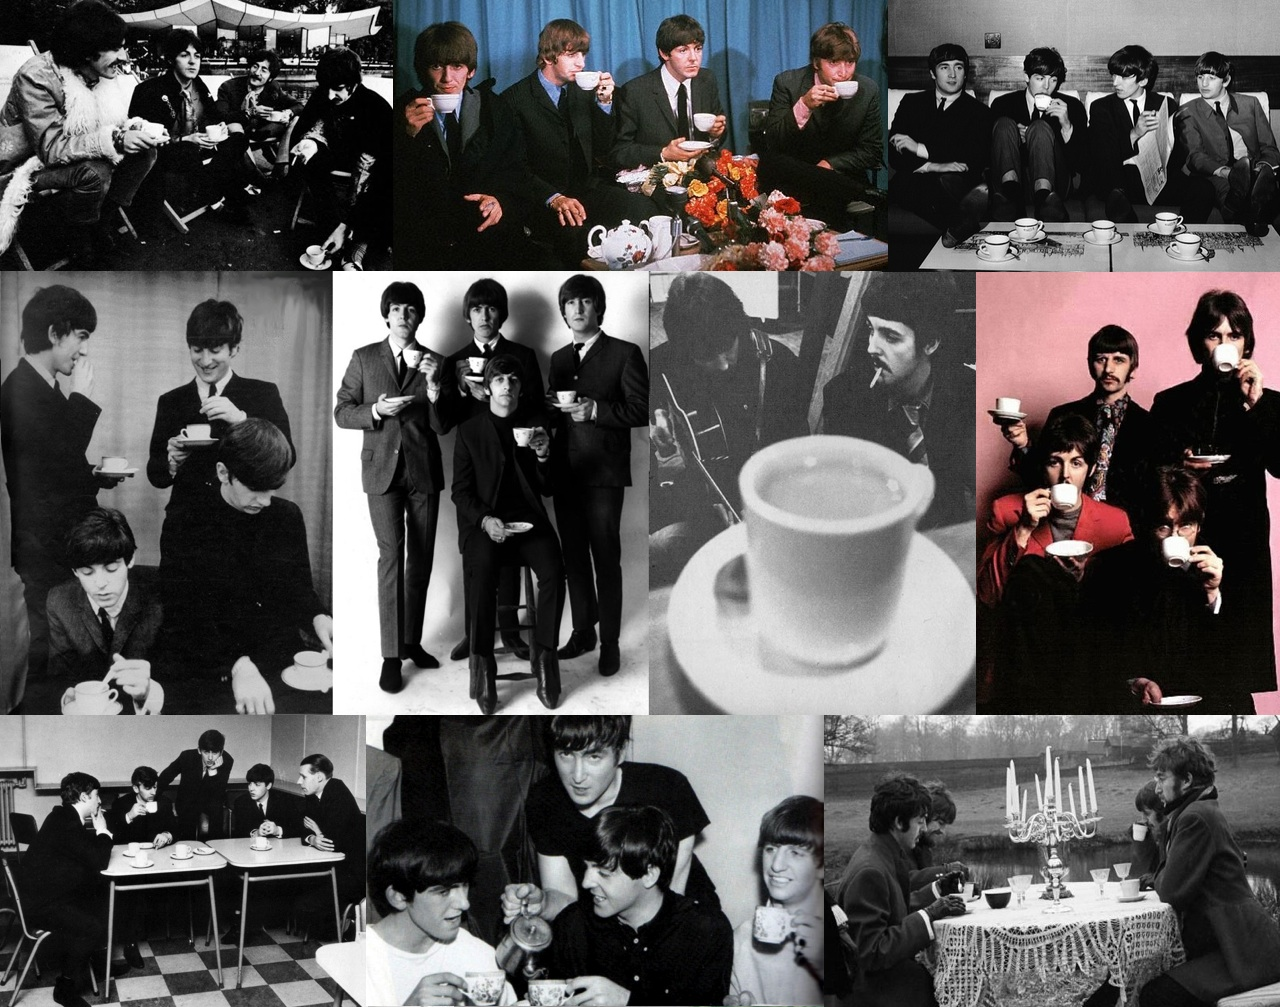 the Beatles drinking tea